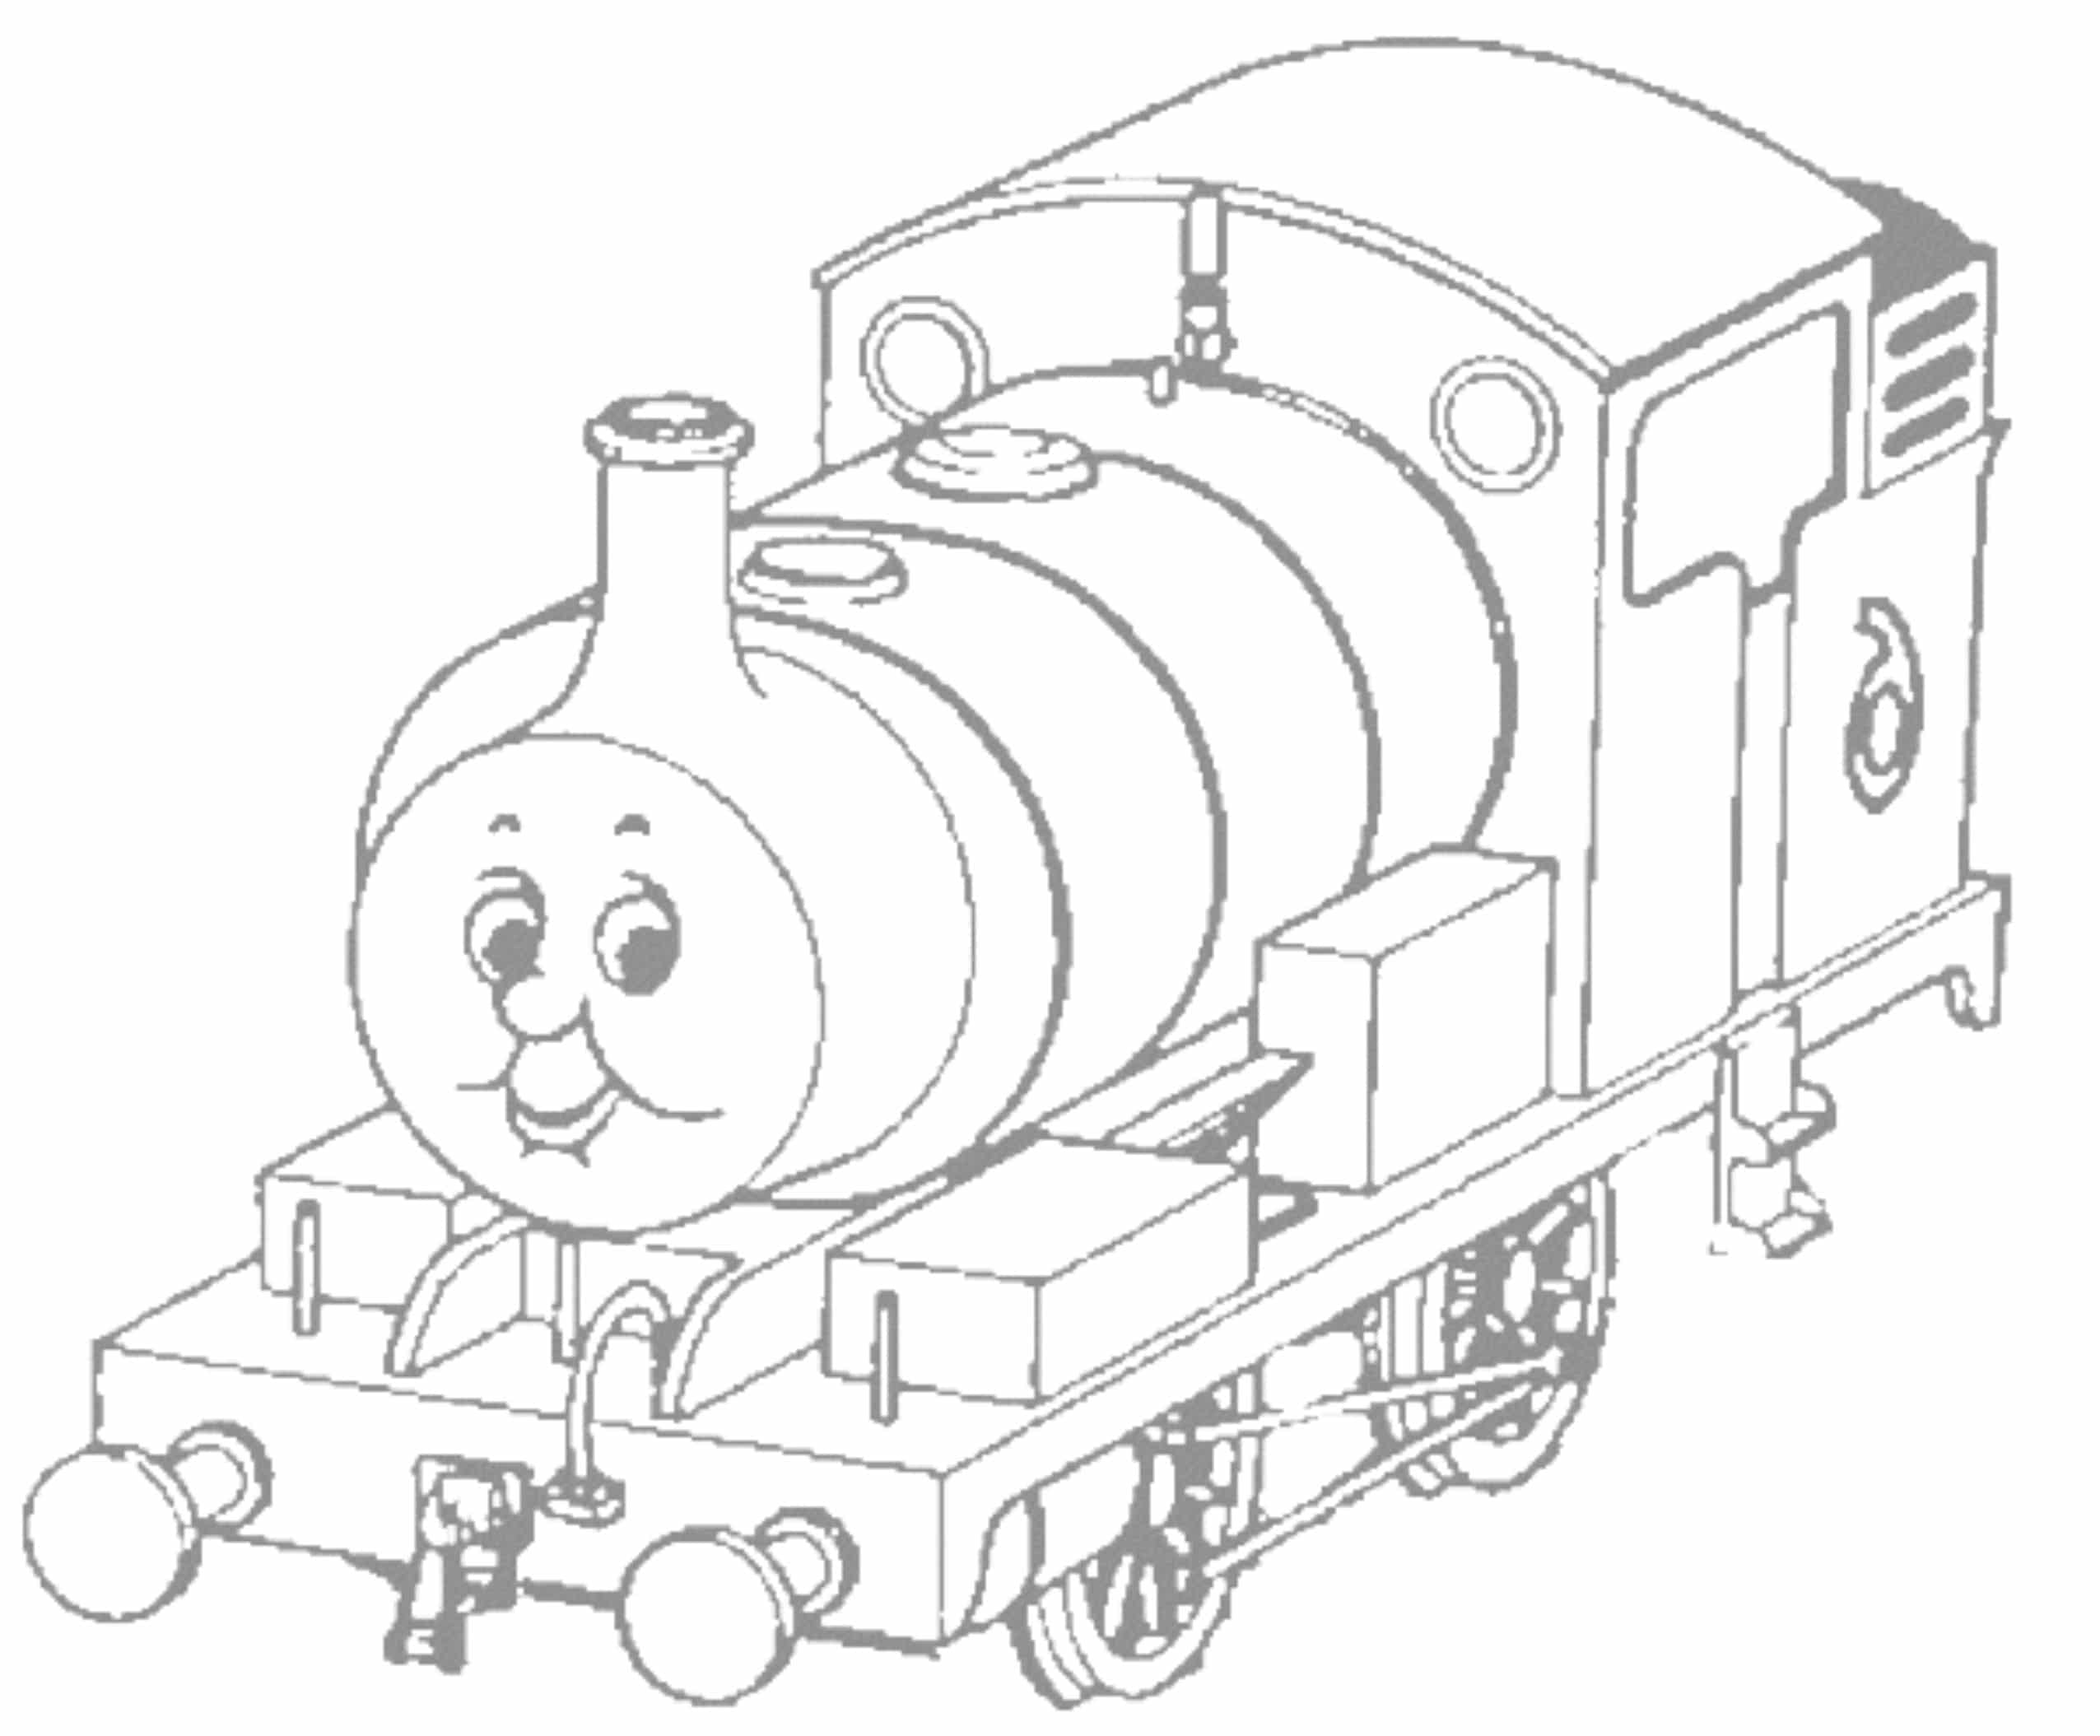 Steam Locomotive Drawing At Getdrawings